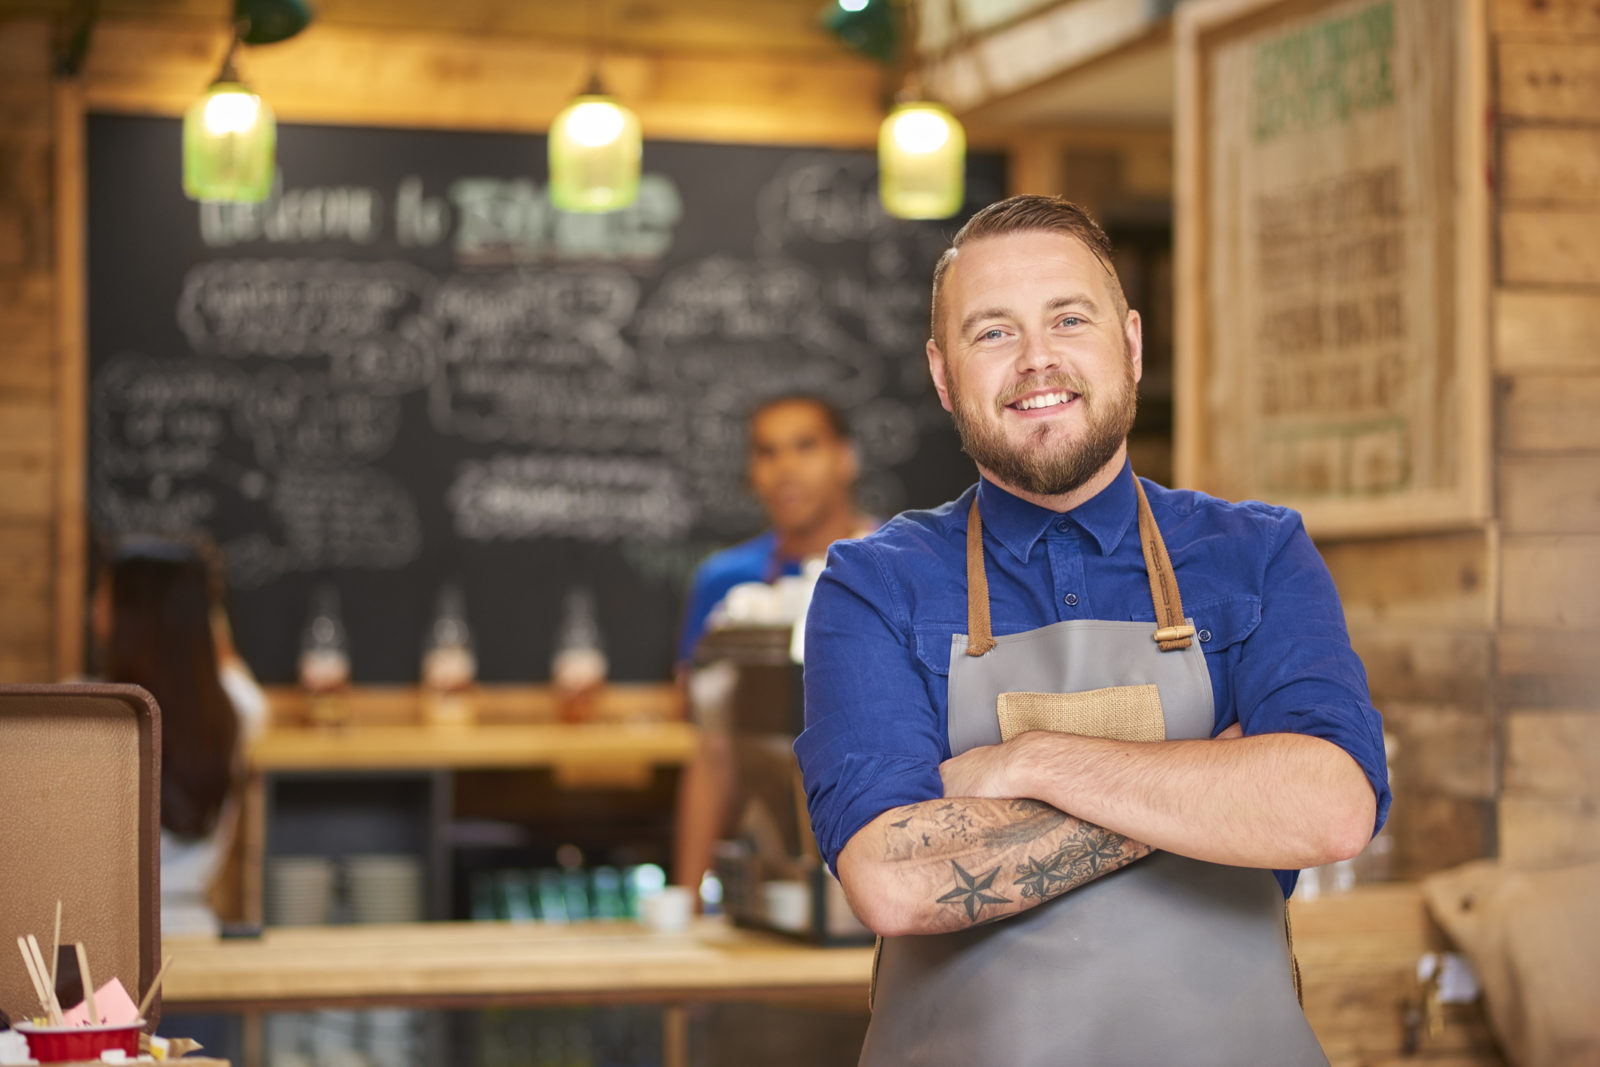 Market your small business with these tips